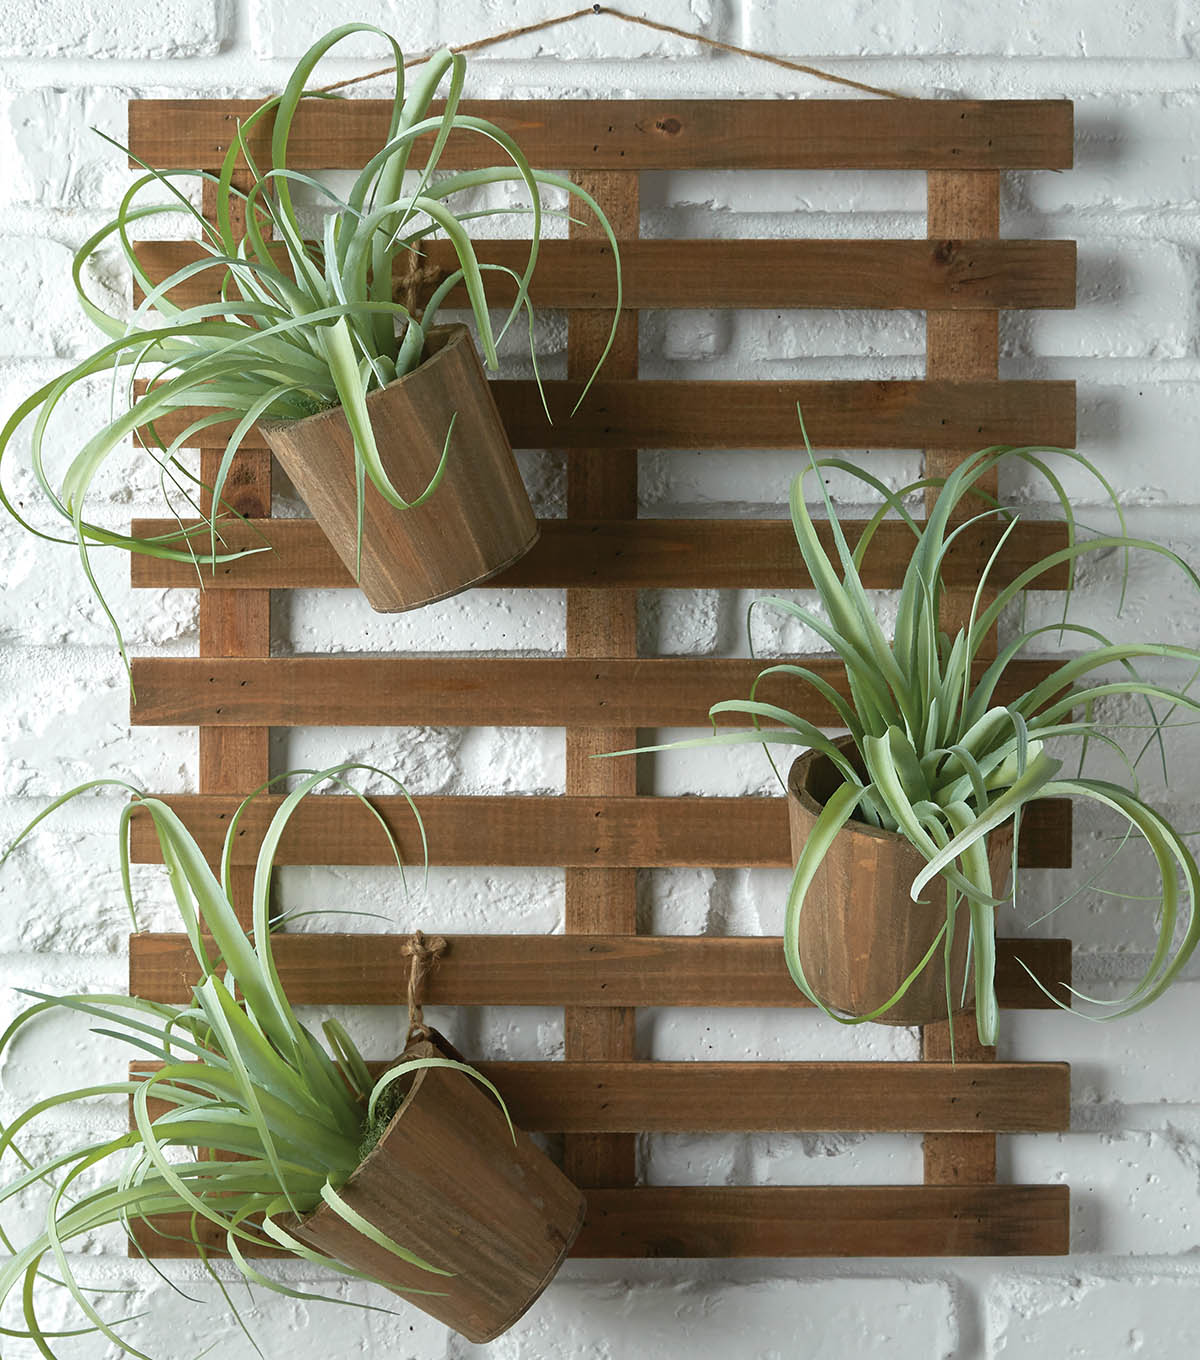 How To Make Hanging Pots With Air Plants